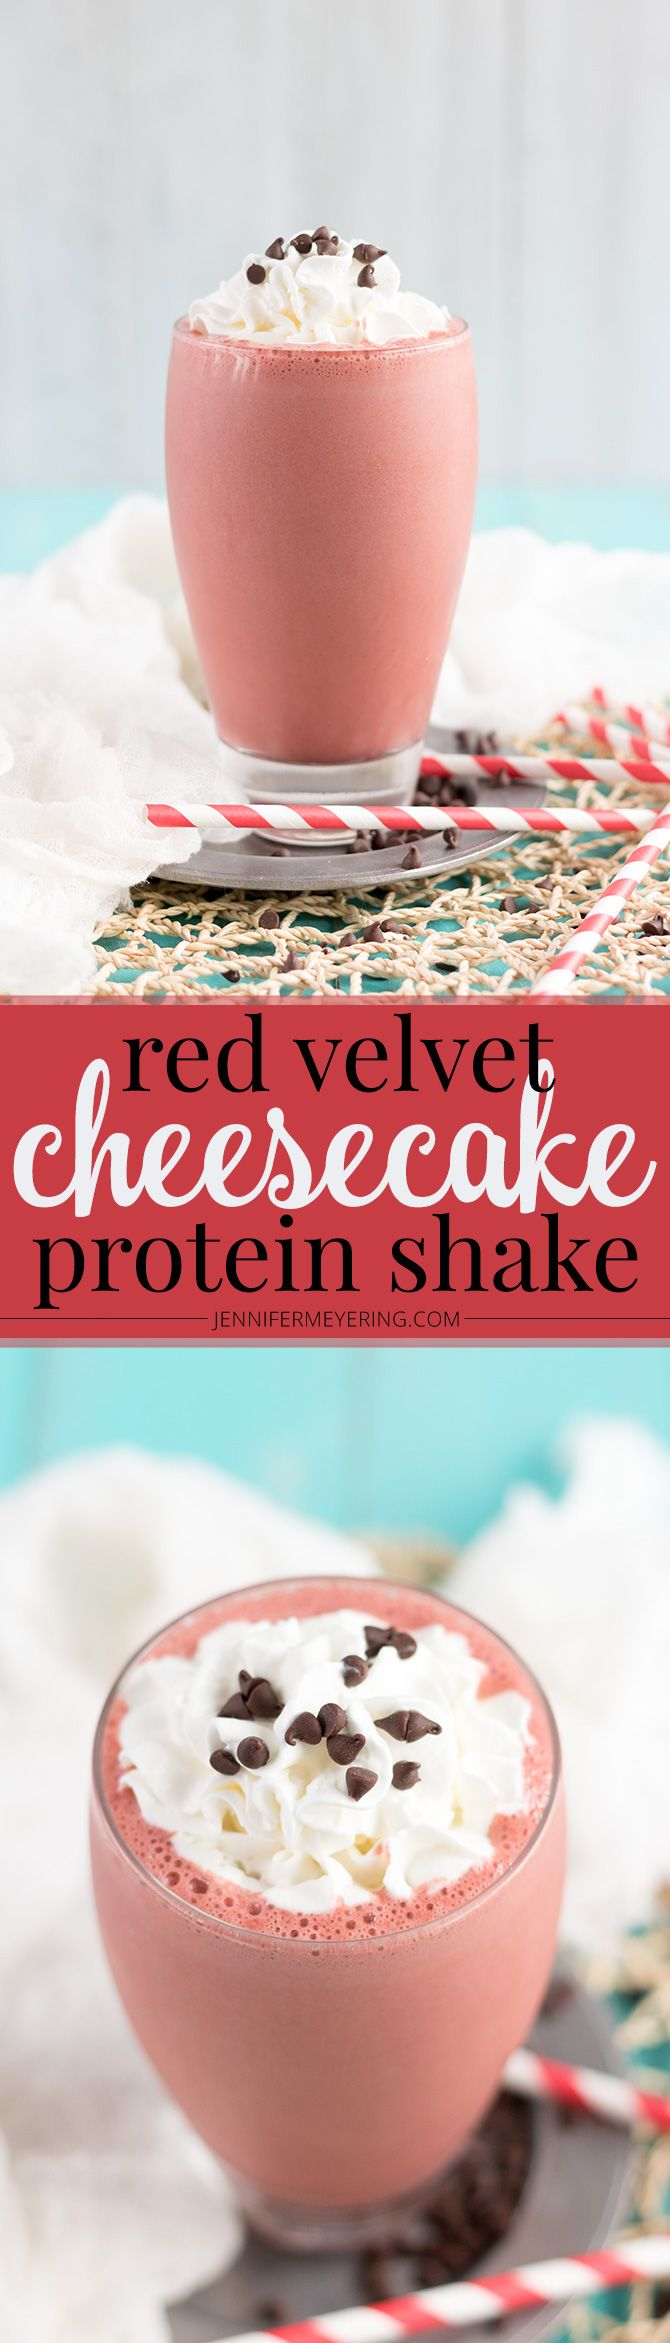 Red Velvet Cheesecake Protein Shake - Jennifer Meyering